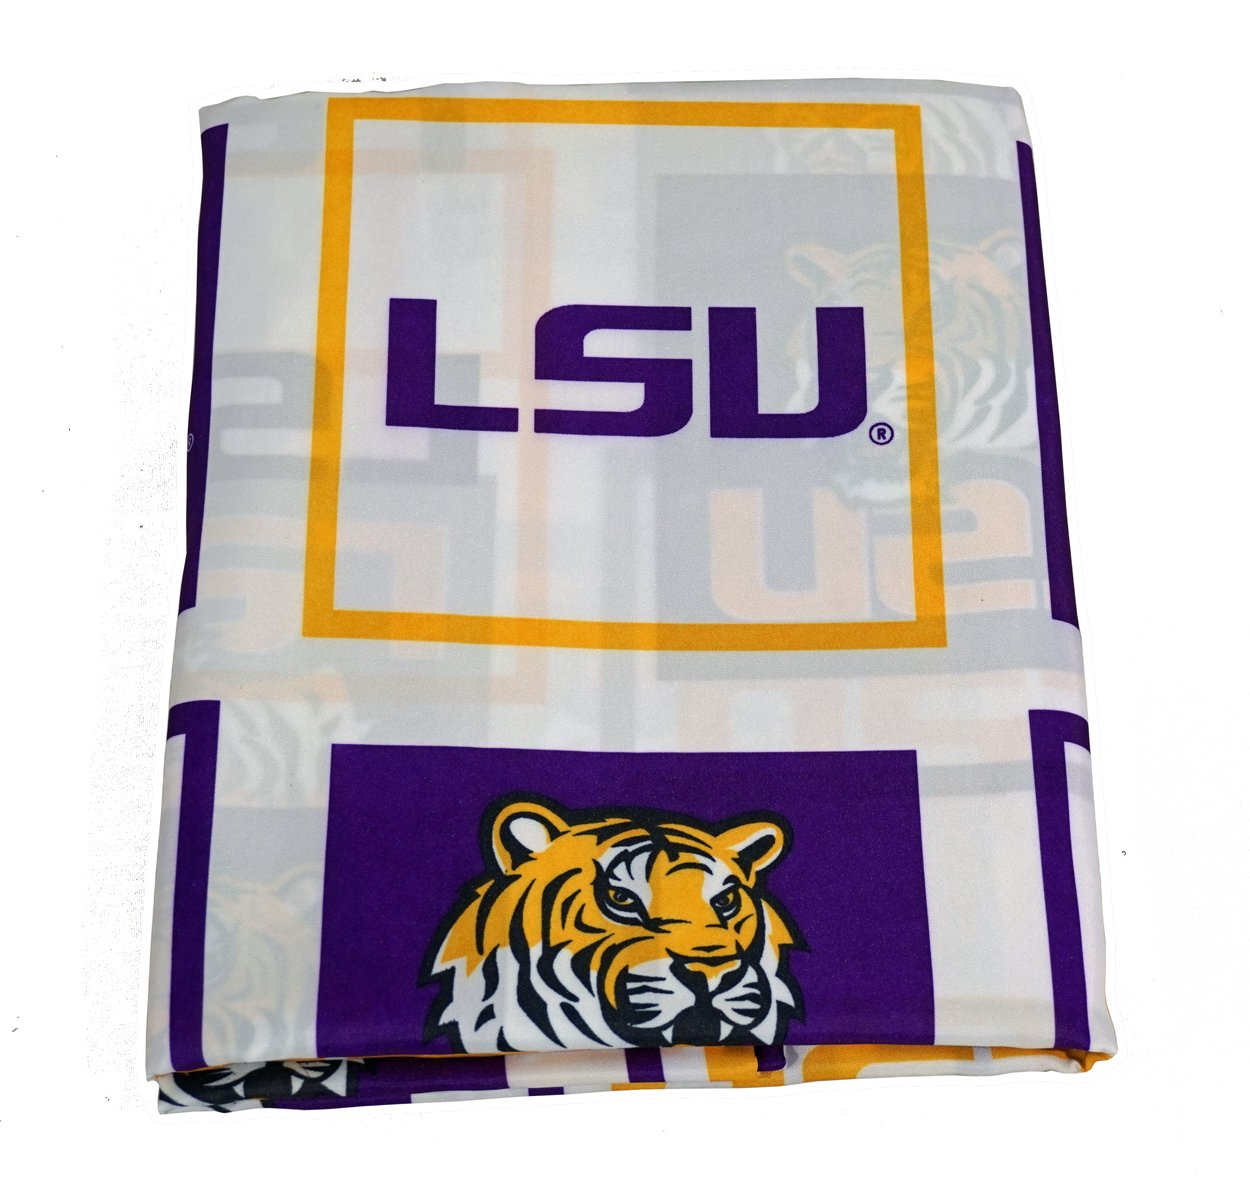 Amazon.com: LSU Louisiana Tigers Fabric Shower Curtain (72x72): Home ...